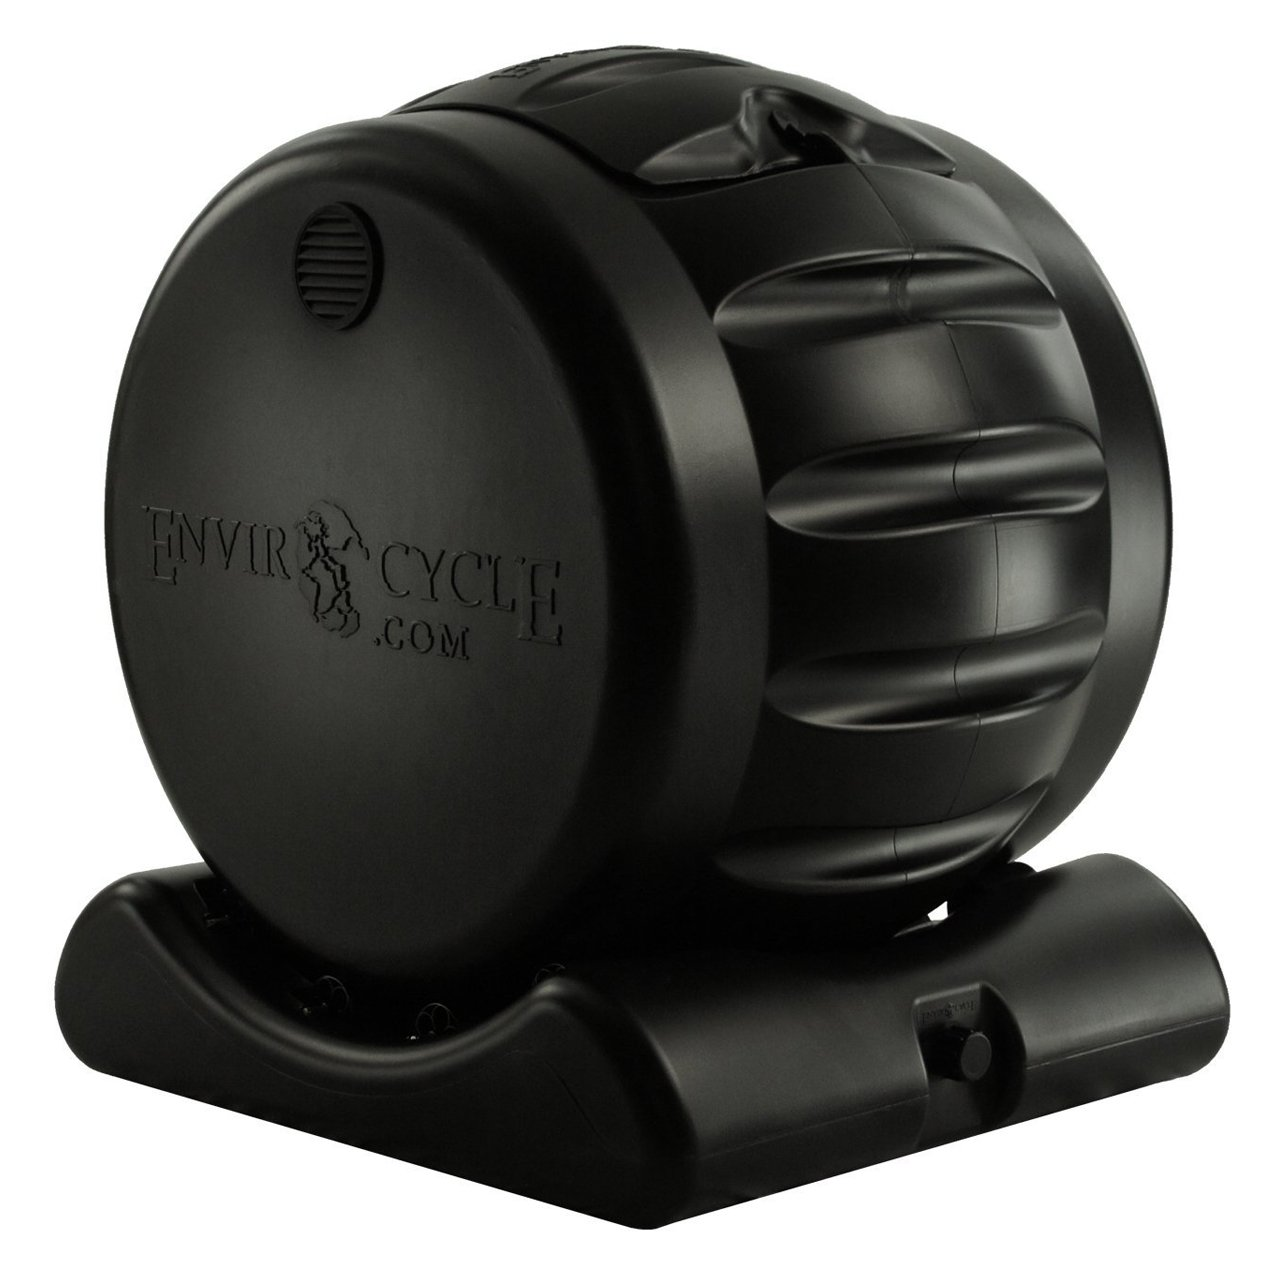 Envirocycle The Most Beautiful Composter in black color